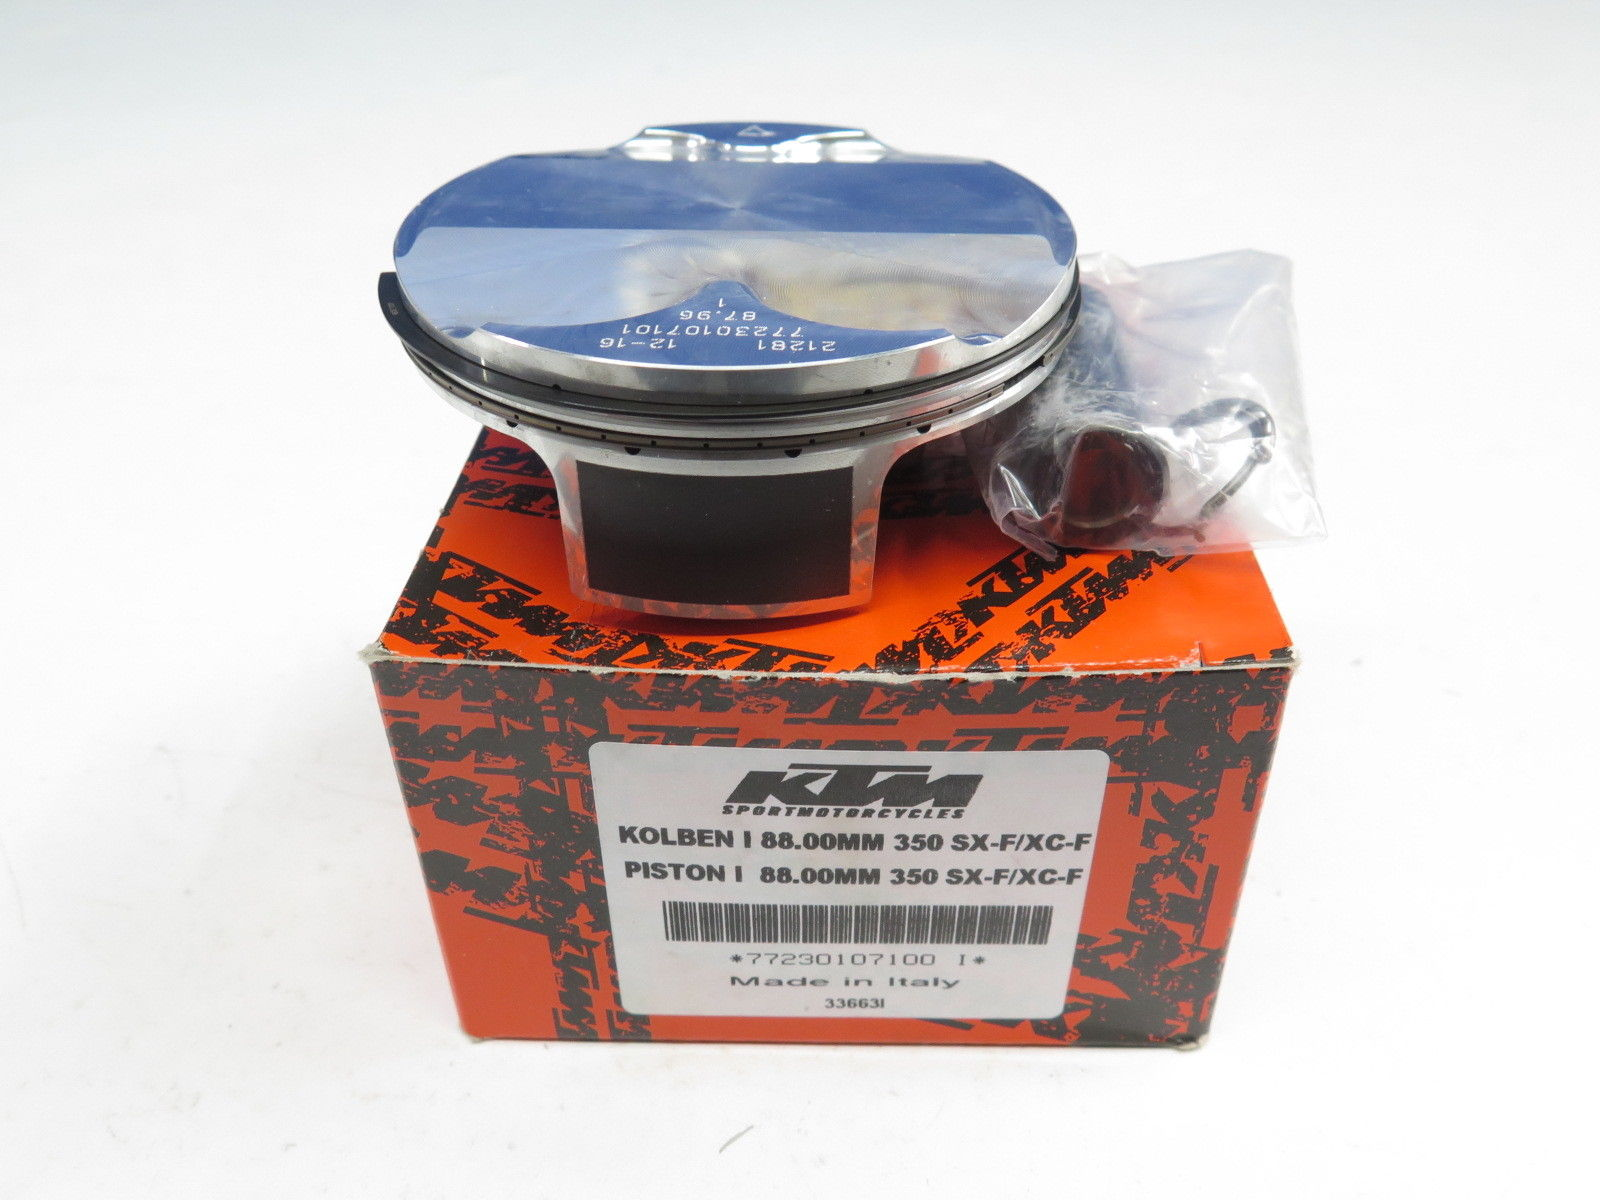 Piston Ring Ktm Exc Is This Right South Bay Riders 2014 350 Sx F Wiring Diagram S L1600